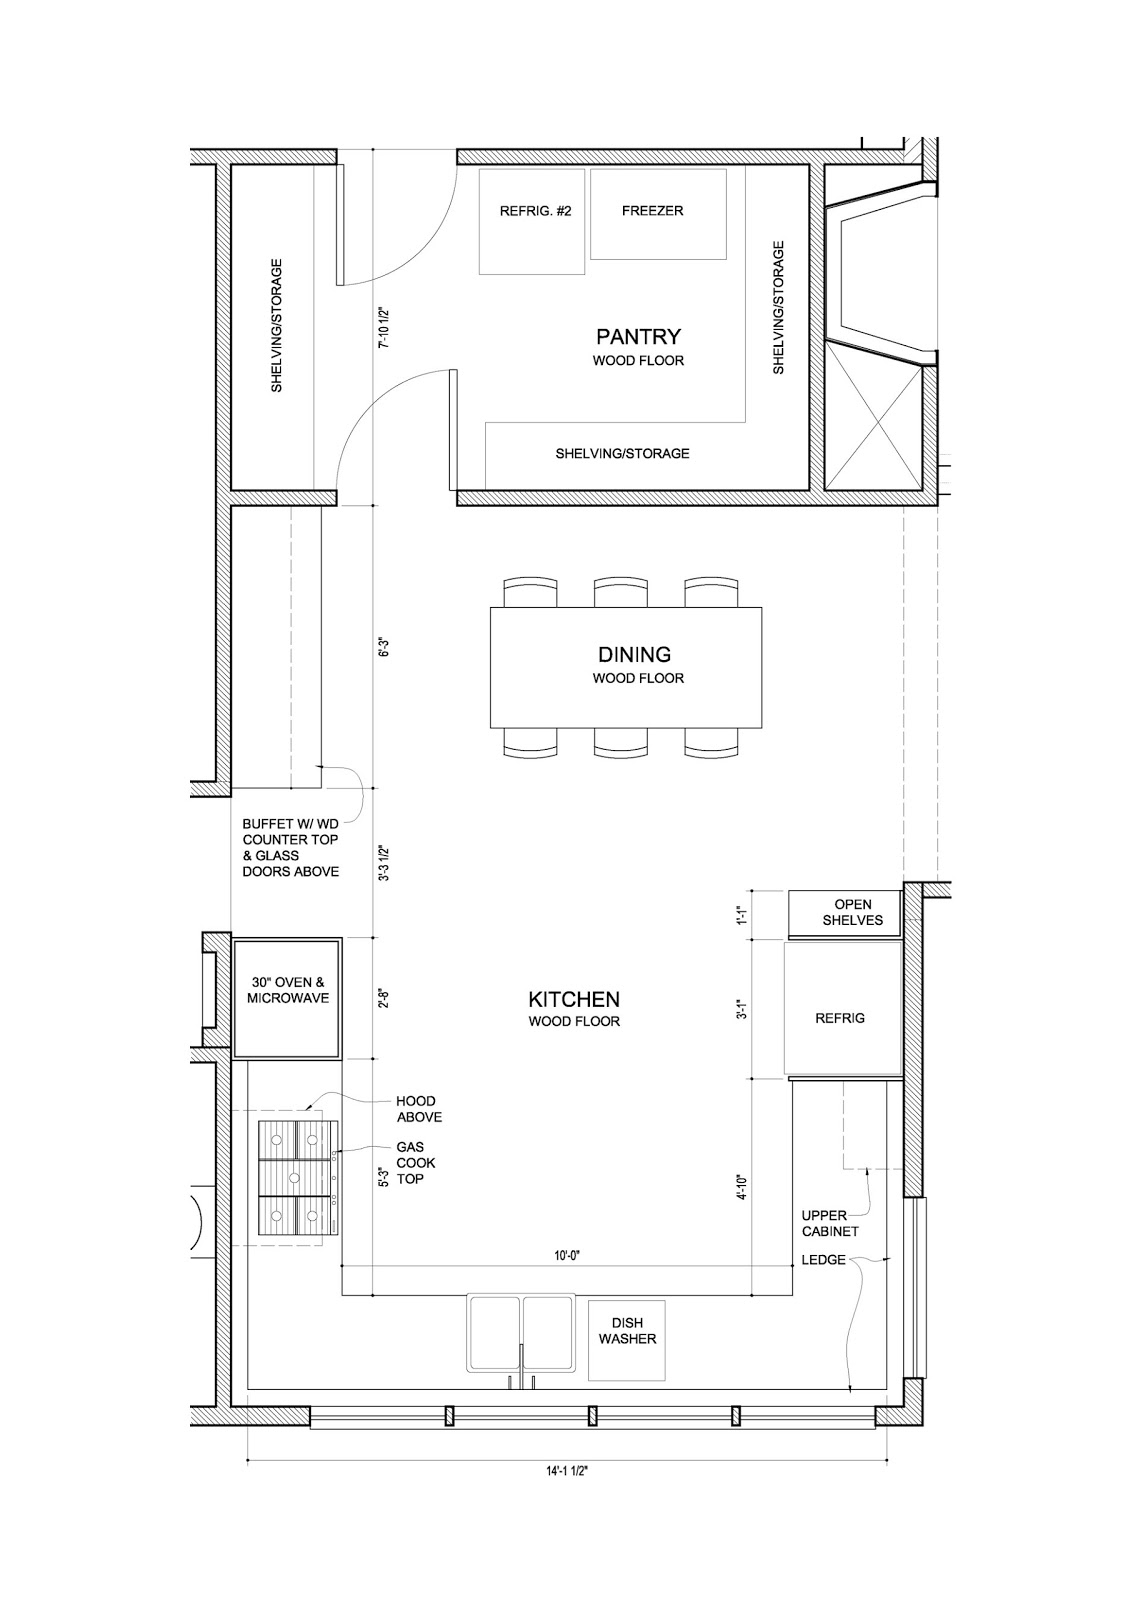 Kitchen Floor Plan with View